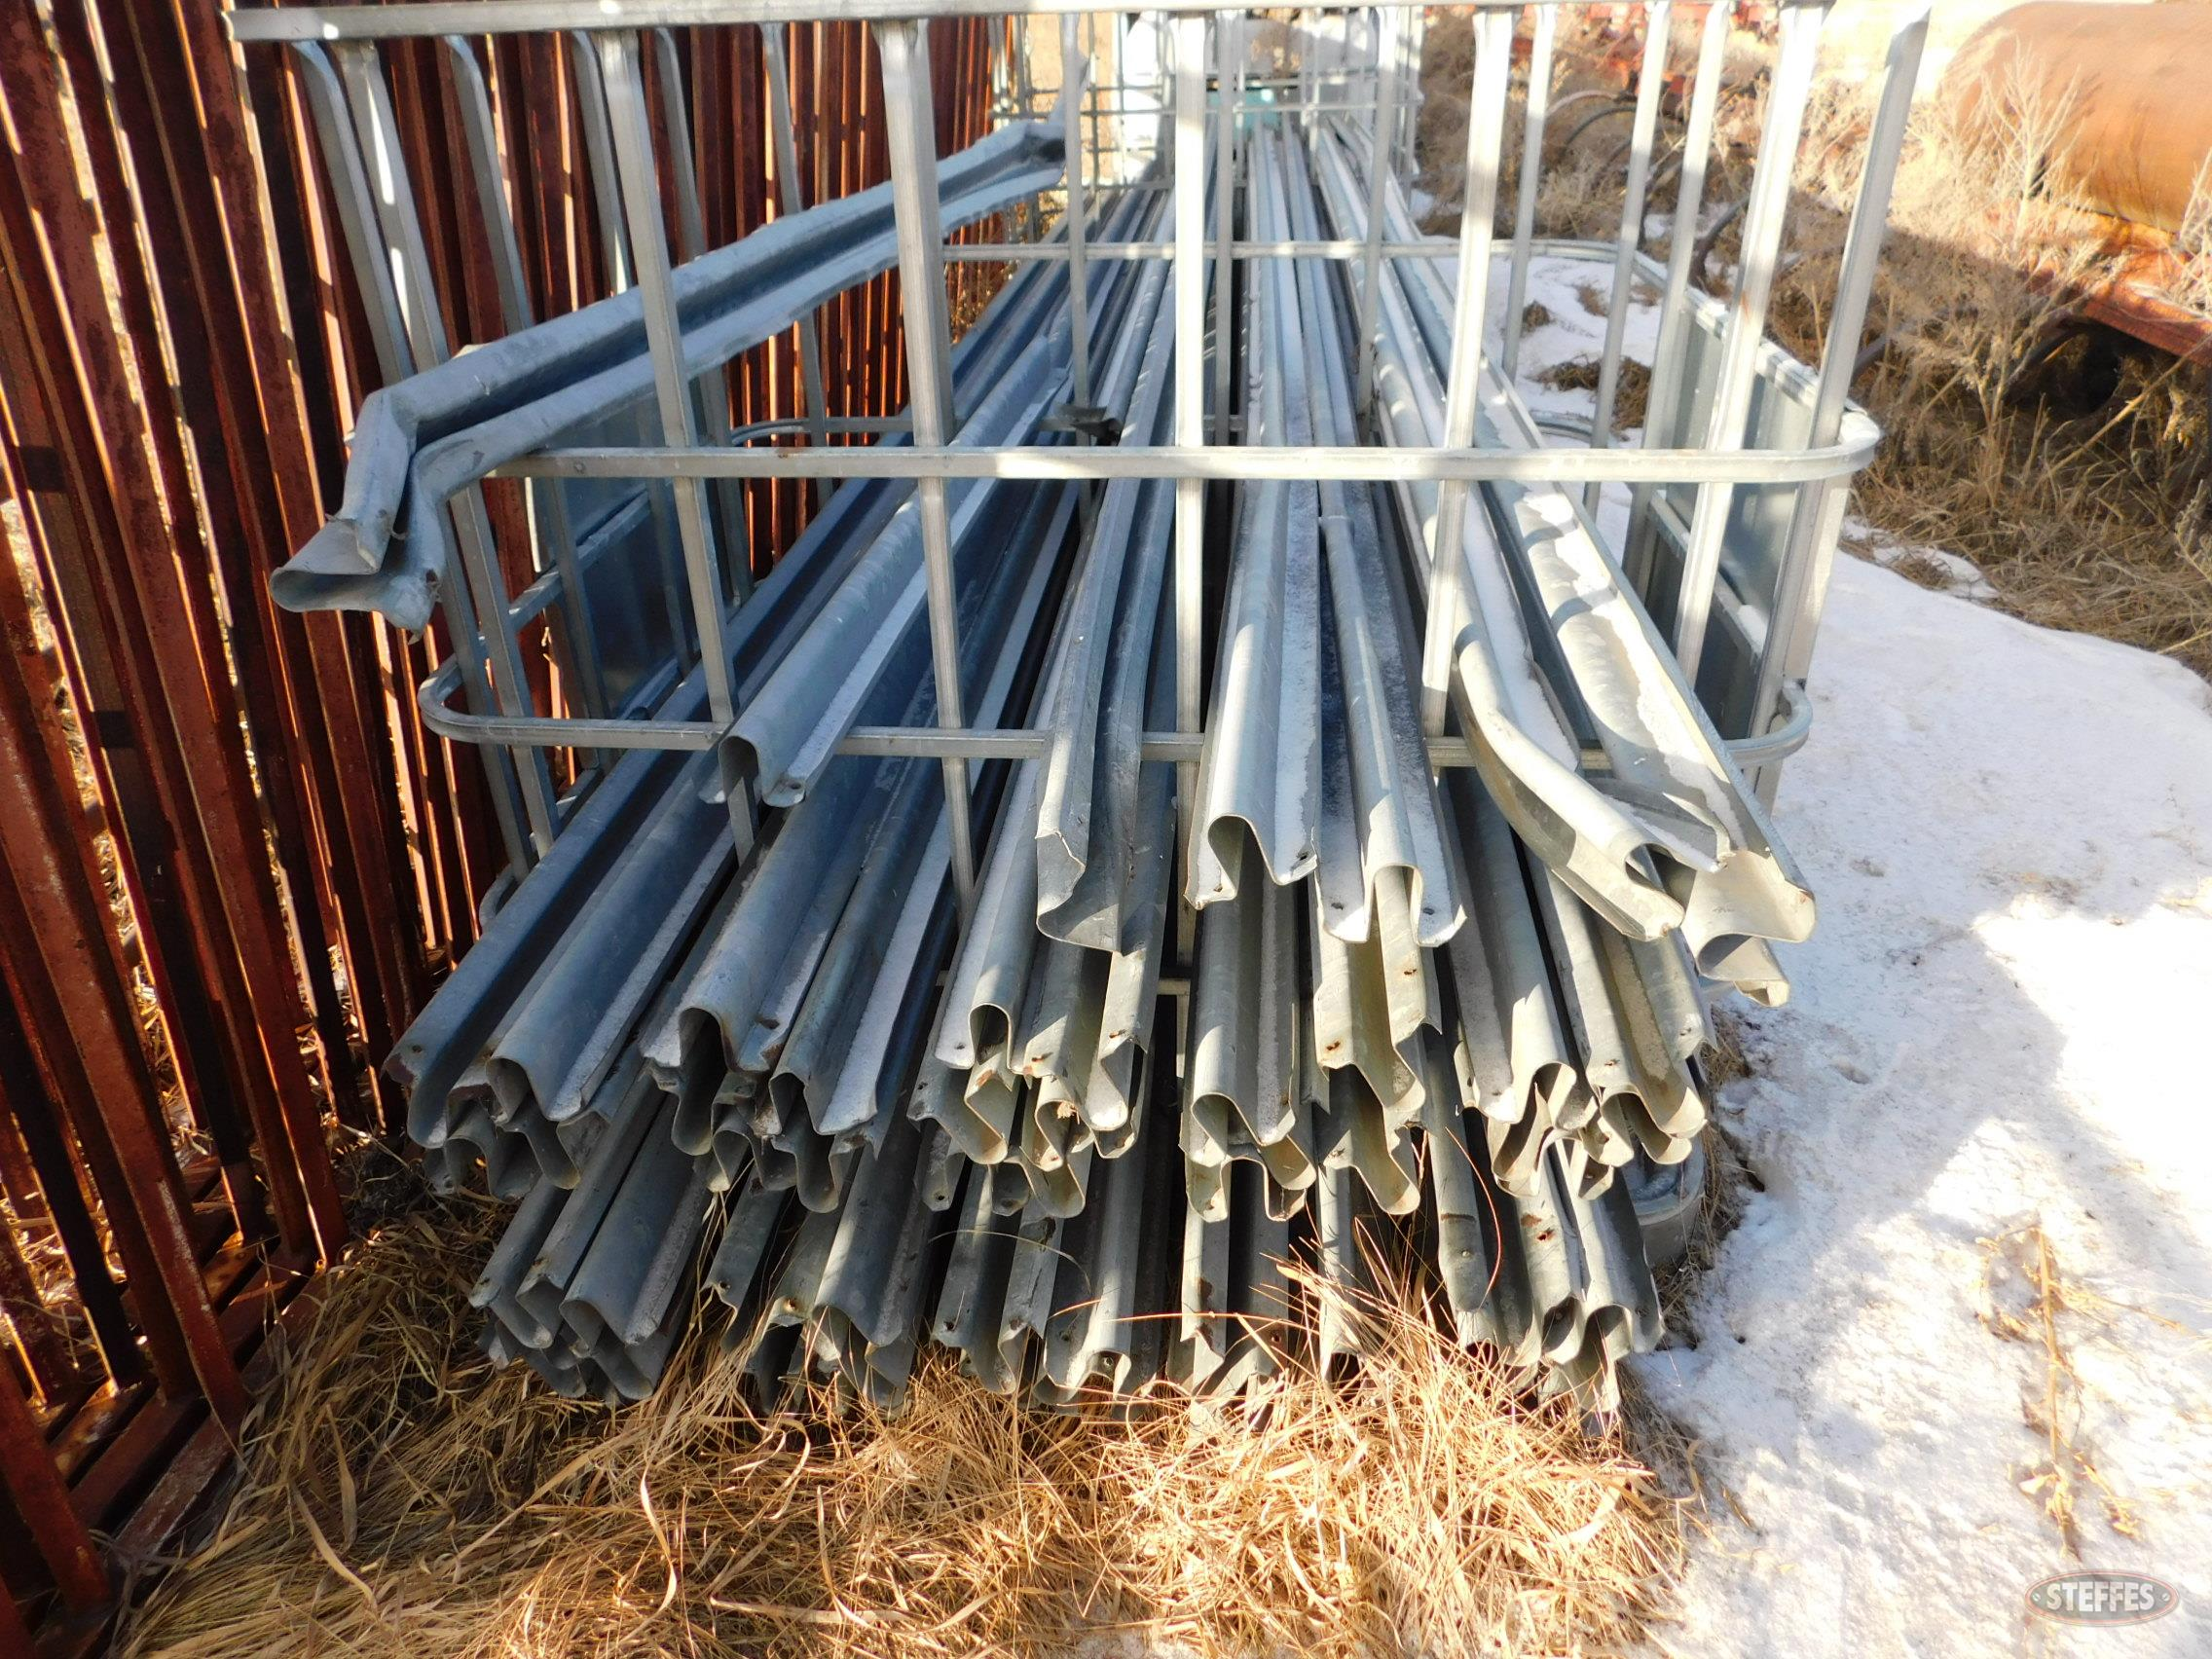 Approx. (50) 16' galvanized guard rails